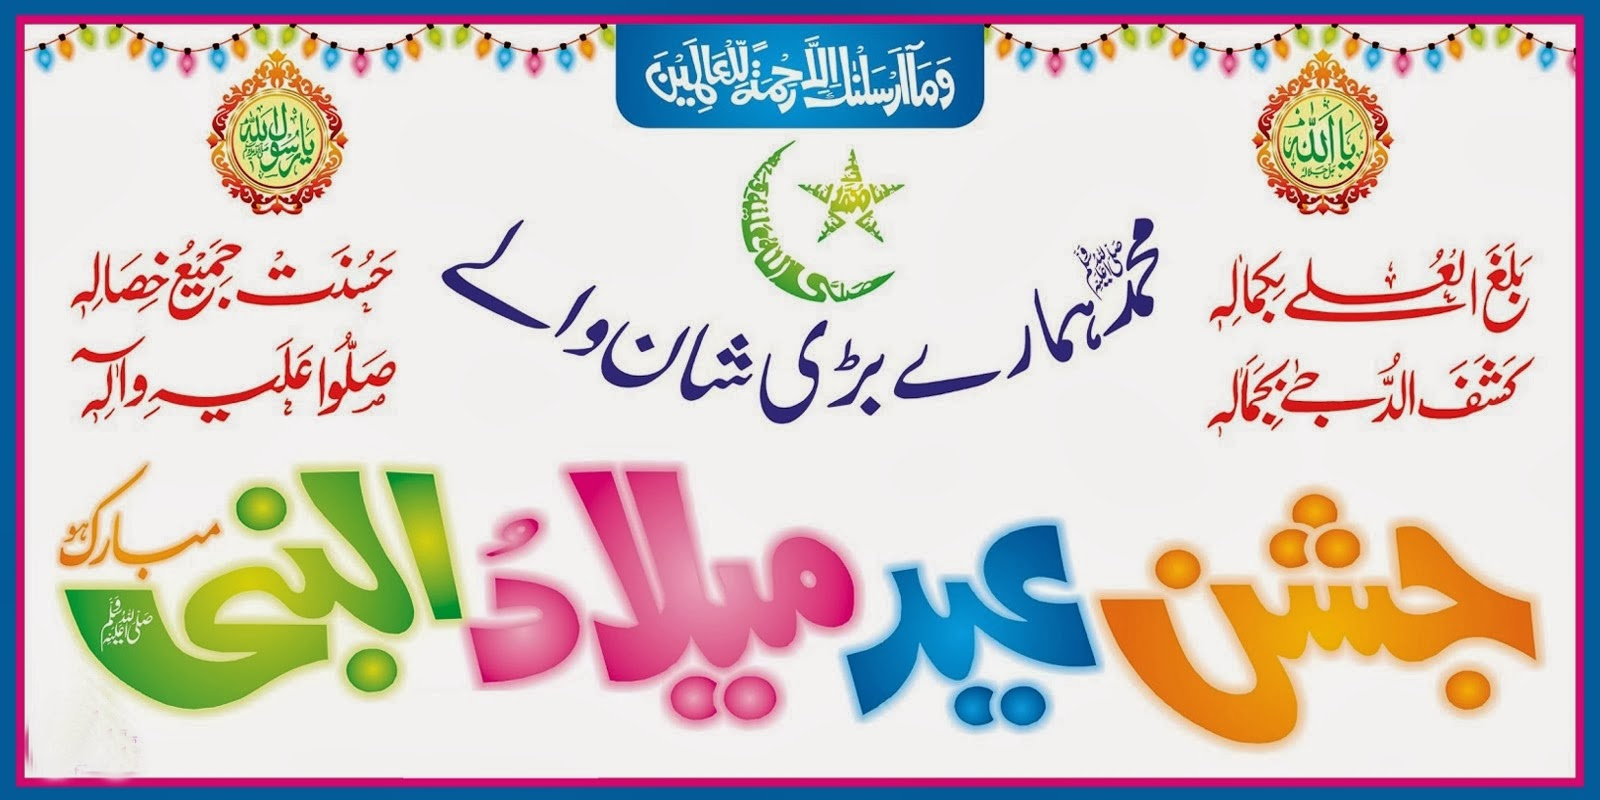 Eid milad un nabi wallpaper with wishes happiness style eid milad un nabi wallpaper with wishes m4hsunfo